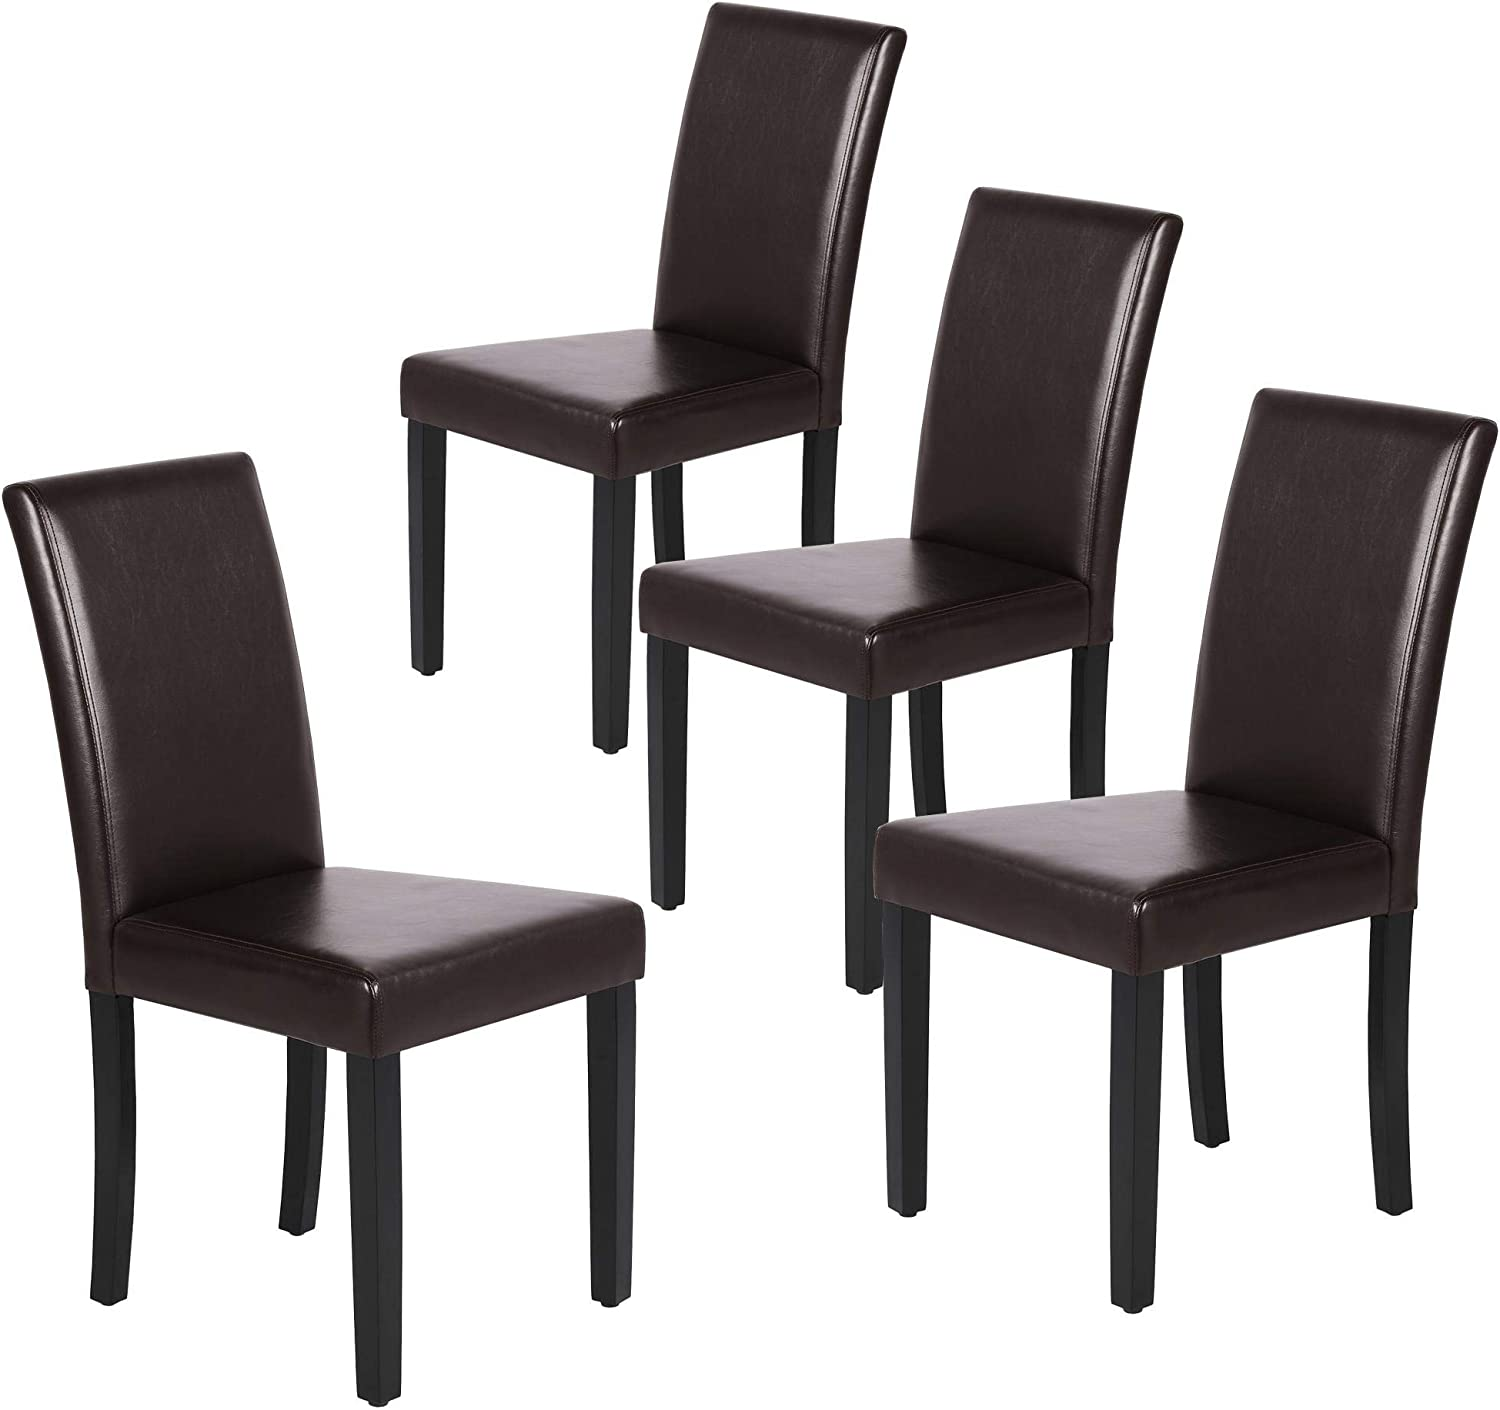 5 Best Dining Chairs for Bad Backs Reviews In 2020